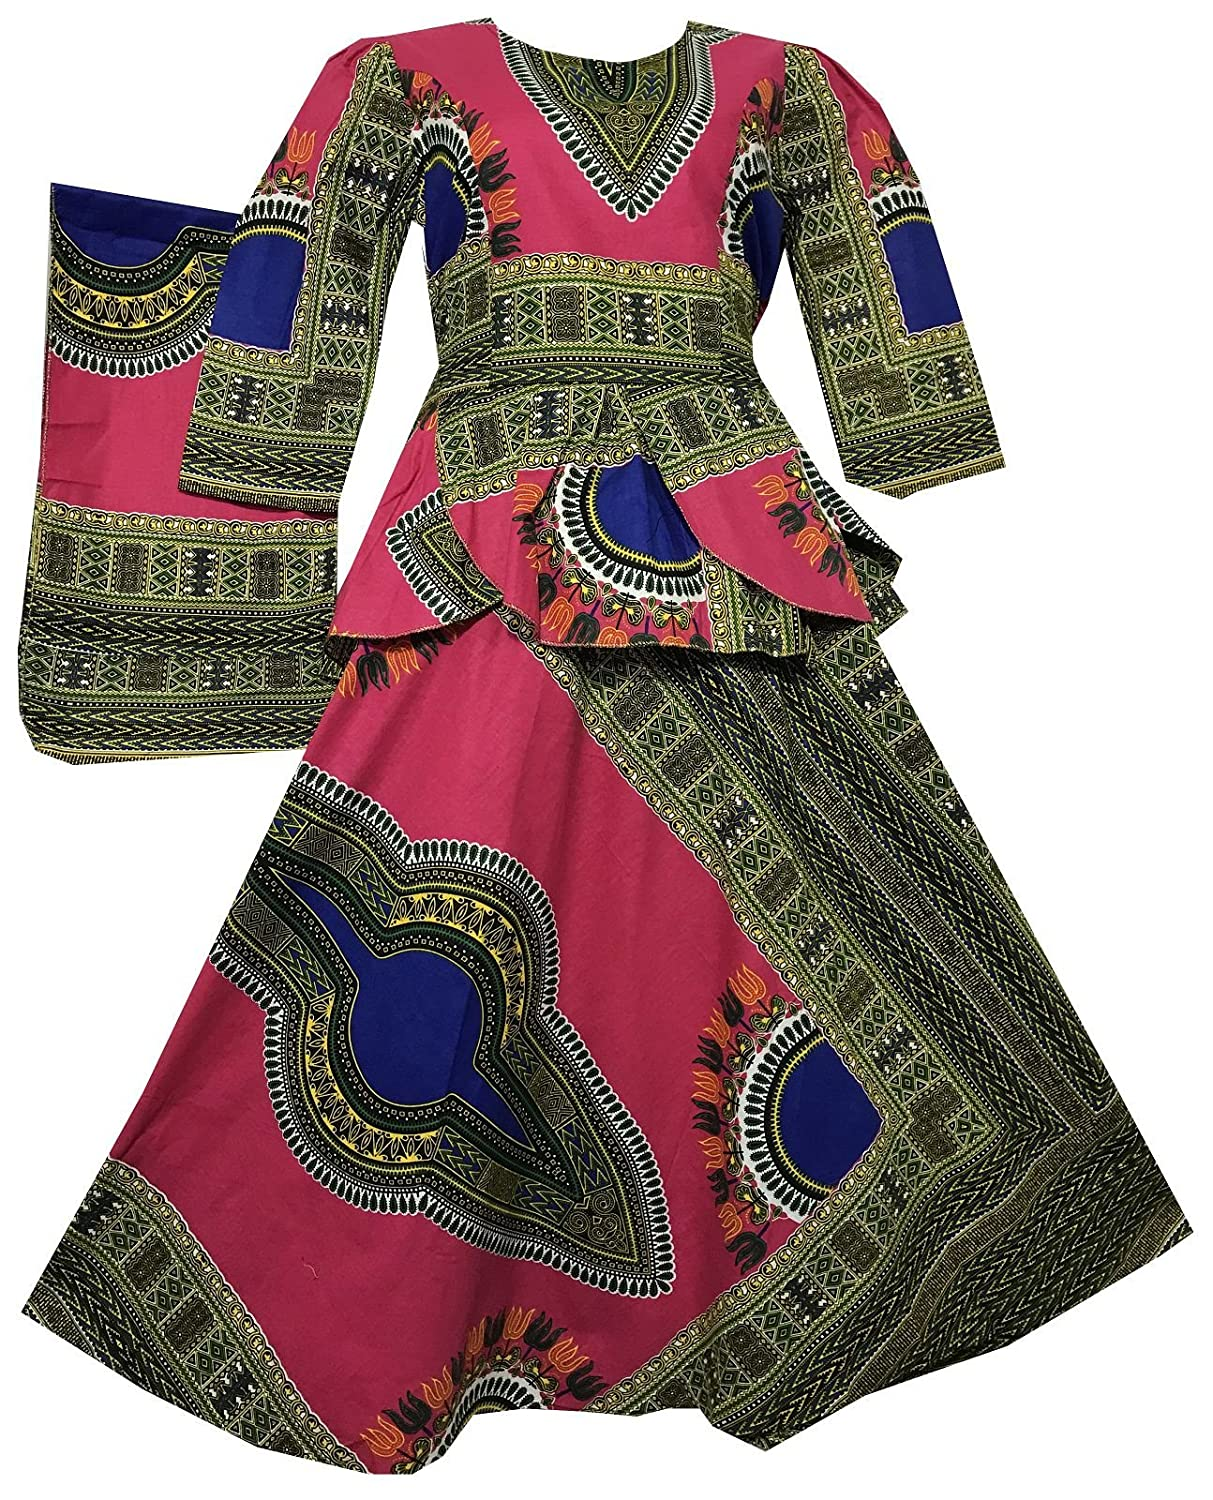 f39818d2283 Amazon.com  Decoraapparel African Girls Wax Dashiki Wrap Skirt Suit Women  Maxi Outfit Suit M